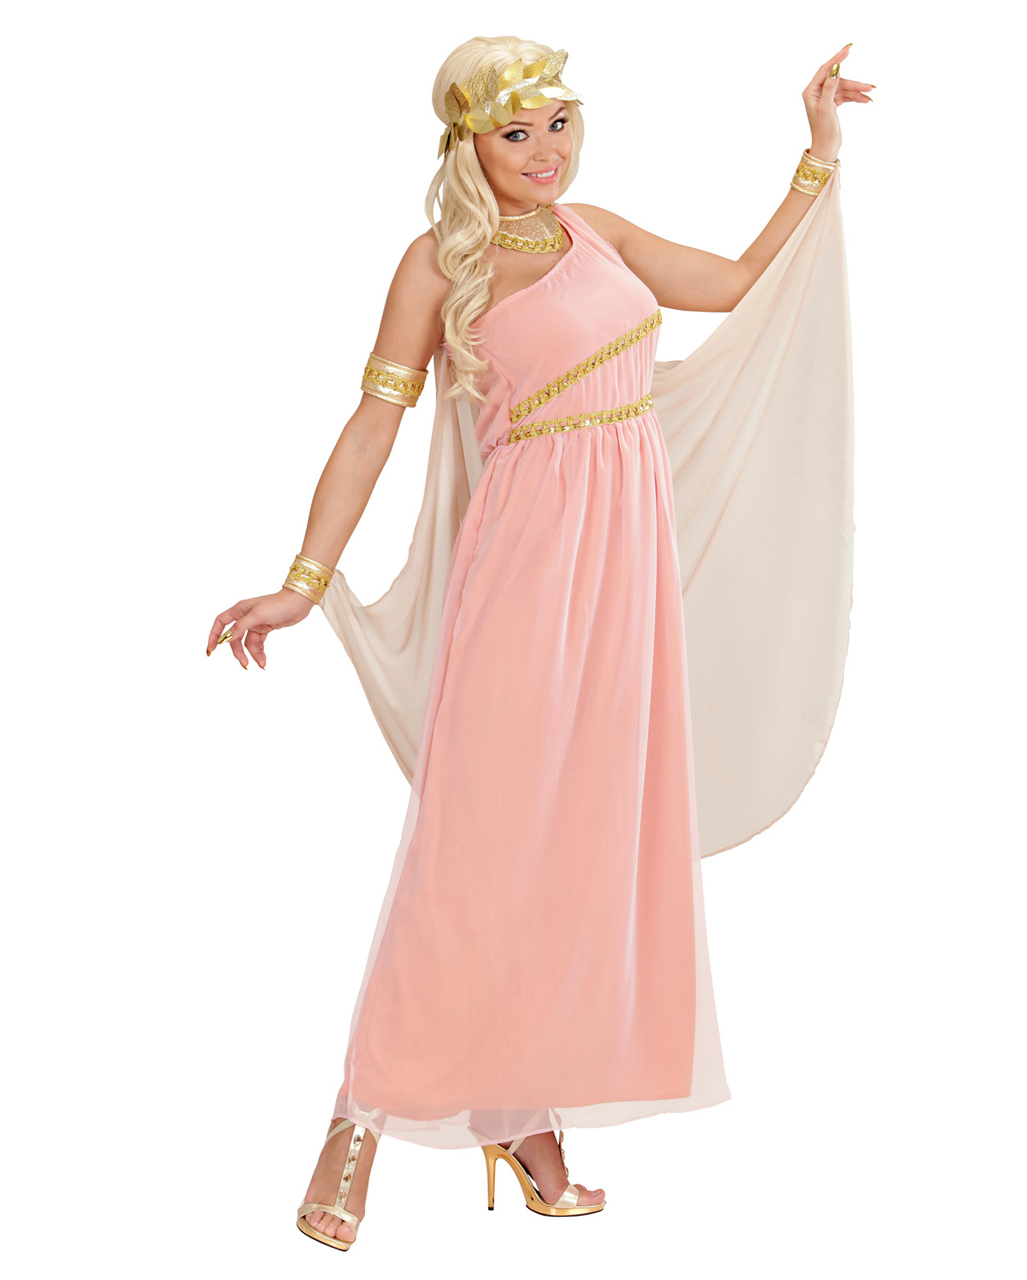 Greek Goddess Aphrodite M Historical costumes at low ...Greek Goddess Aphrodite With Clothes